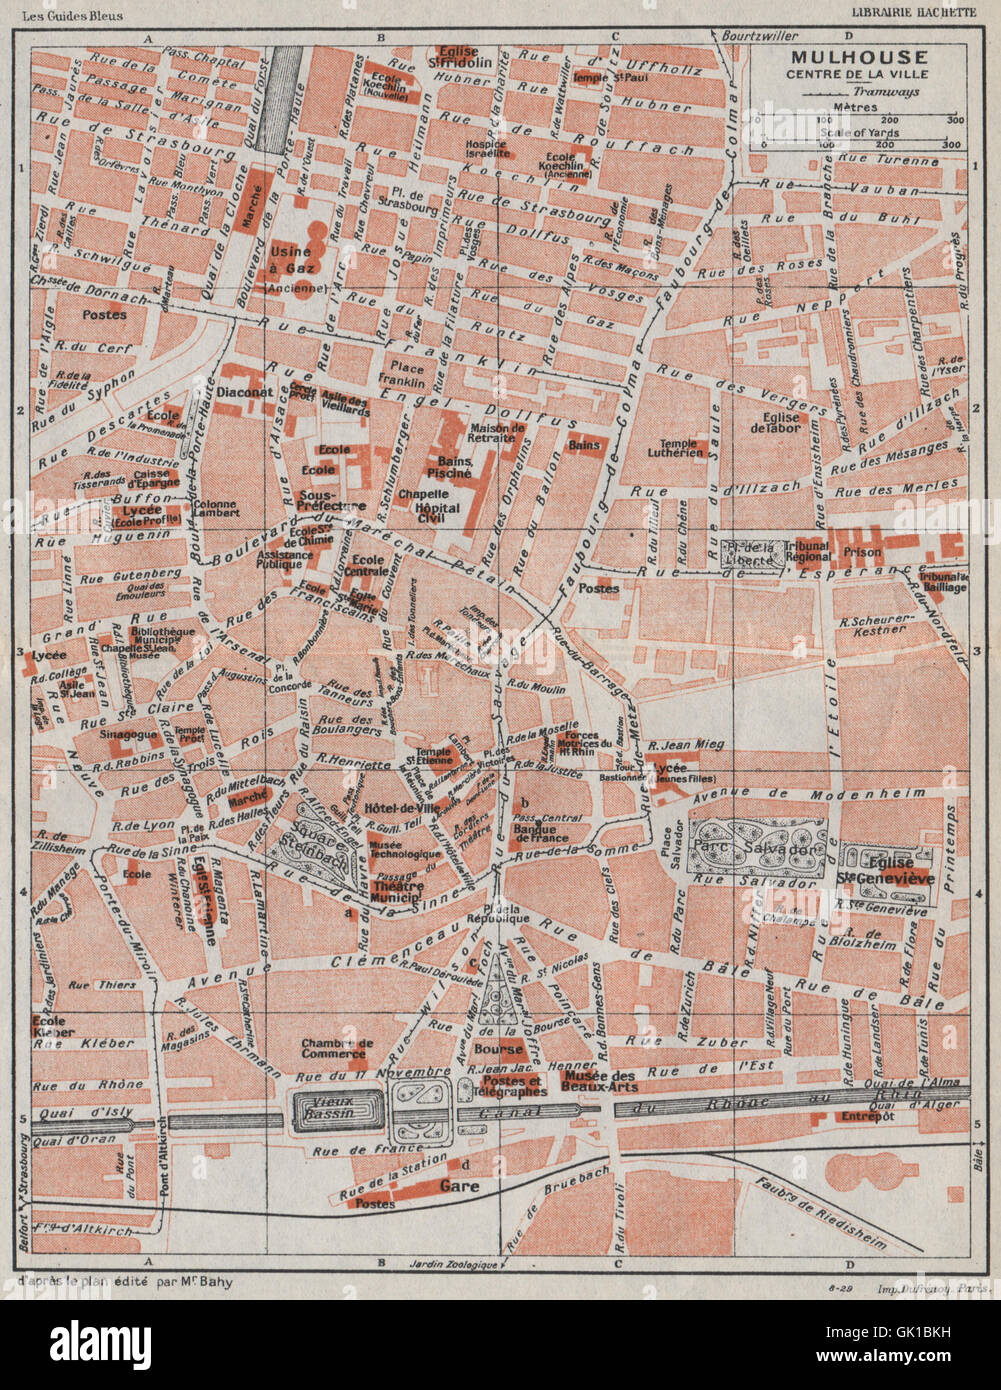 MULHOUSE Centre de la ville Vintage town city map plan carte Stock